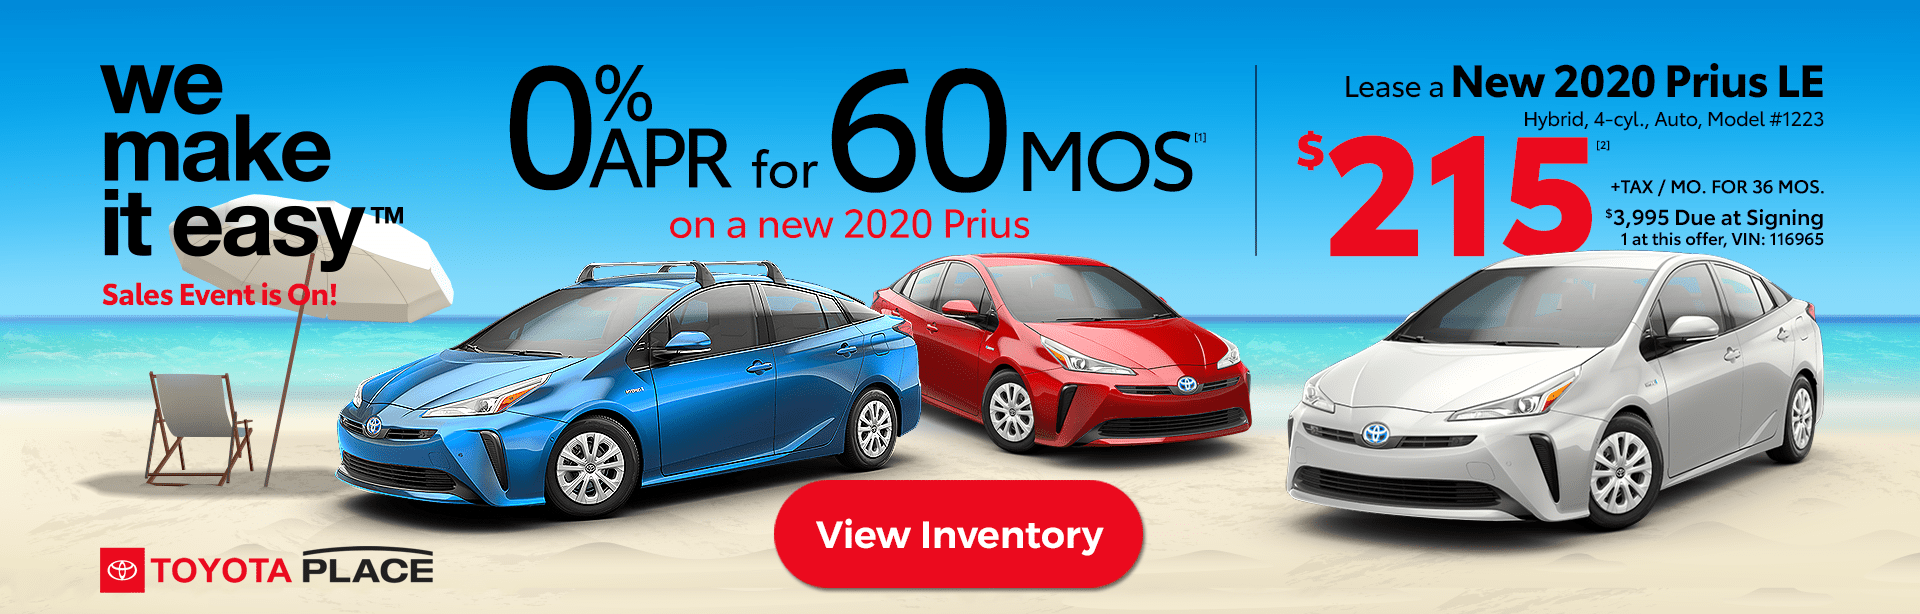 We Make it Easy Sales Event Prius Deals Lease